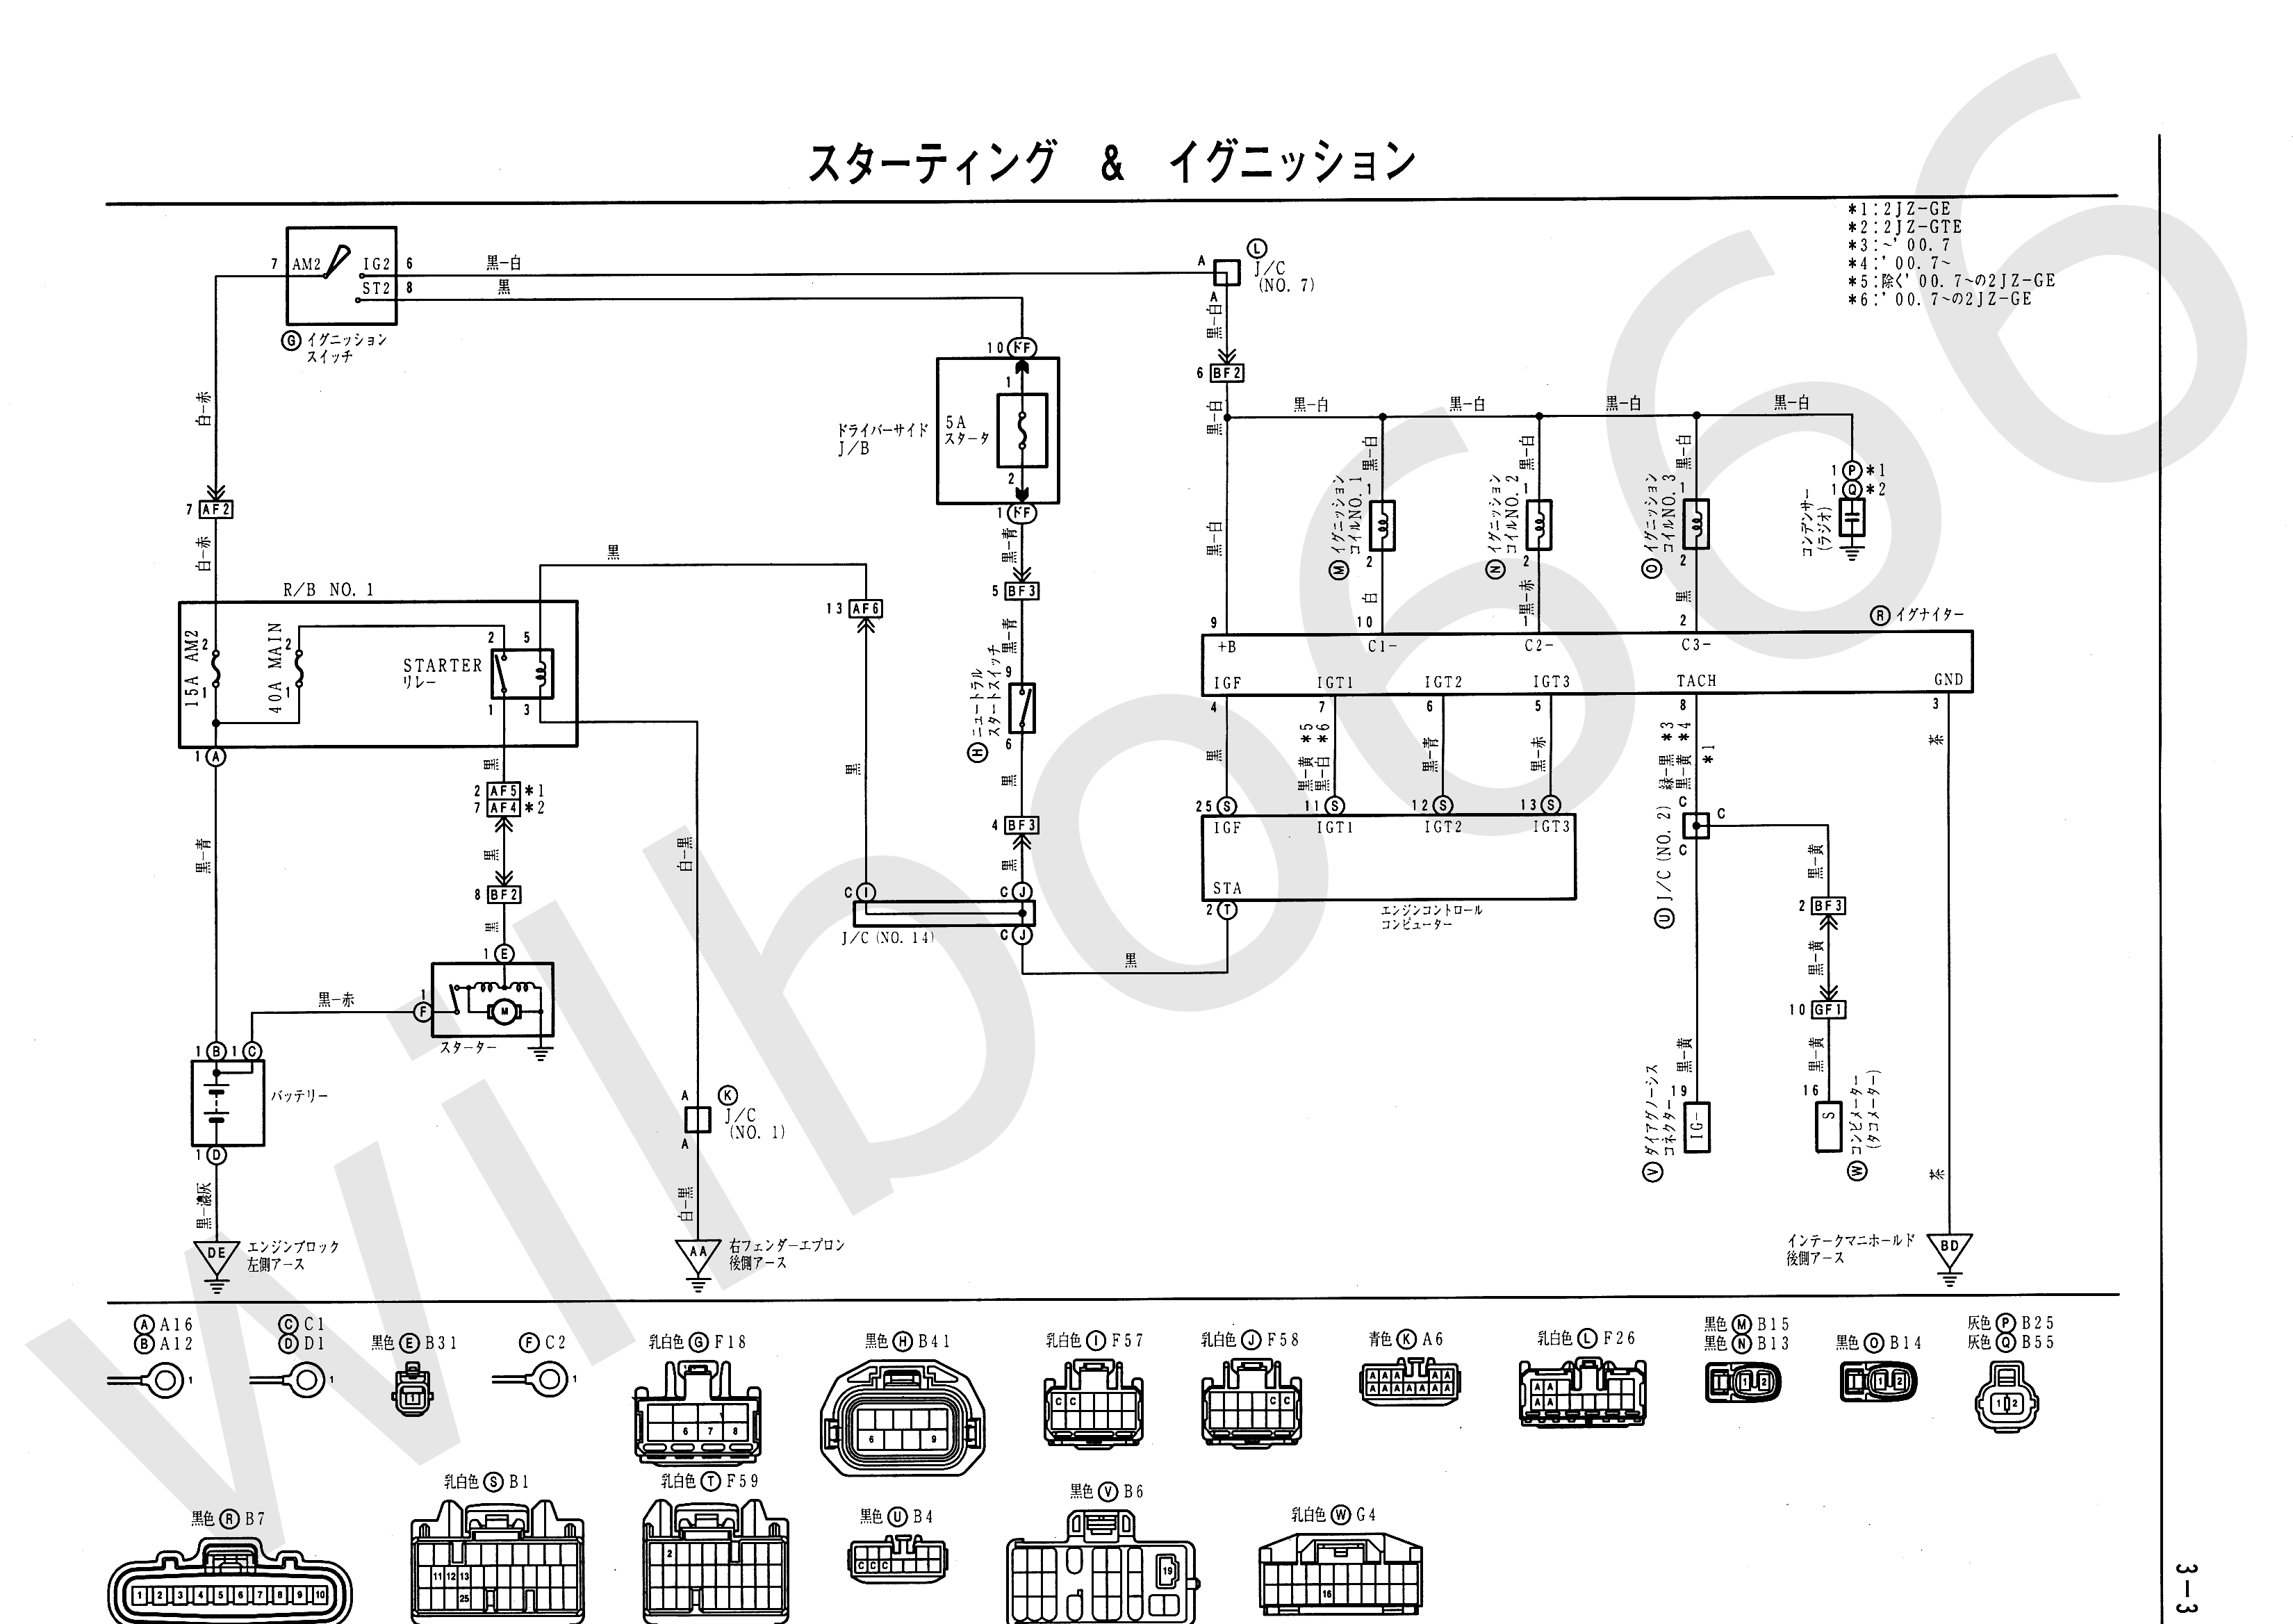 JZS161 Electrical Wiring Diagram 6748505 3 3 wilbo666 2jz gte vvti jzs161 aristo engine wiring 2jz ge wiring diagram pdf at edmiracle.co